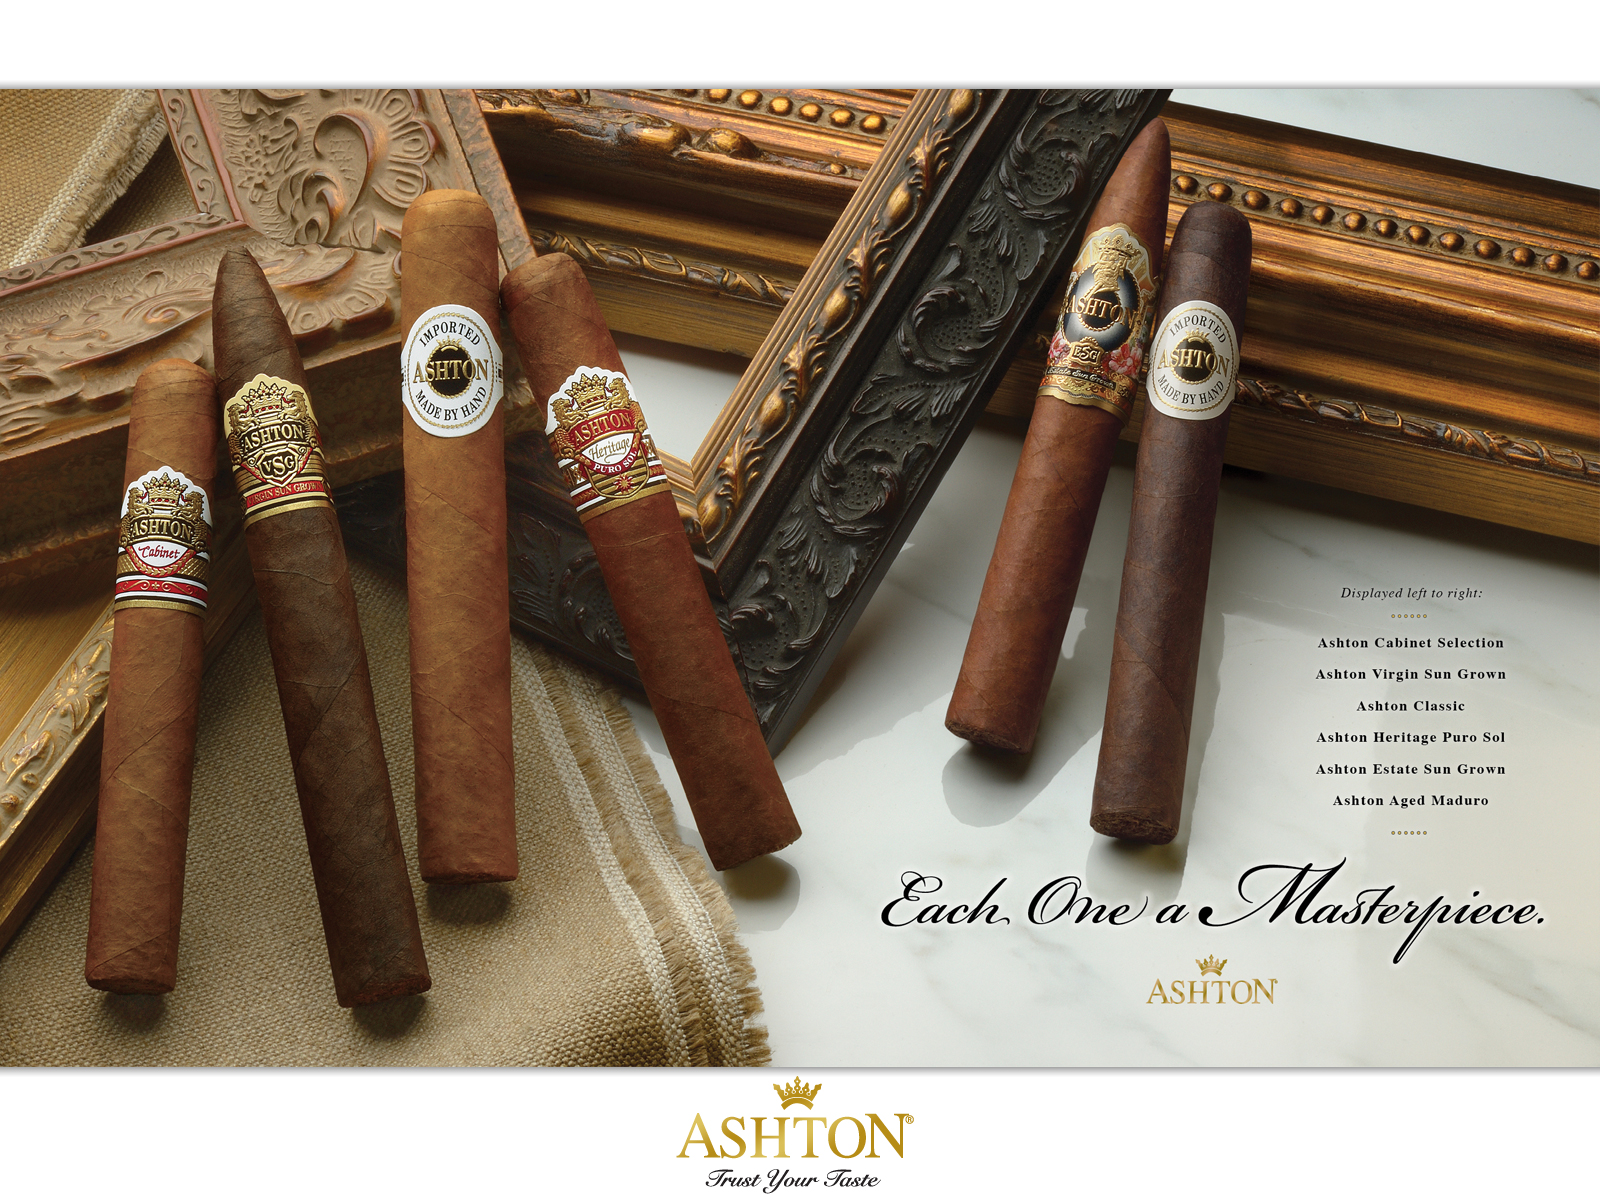 ashton_cigars_advertising_campaign_cigarmonkeys_4.jpg